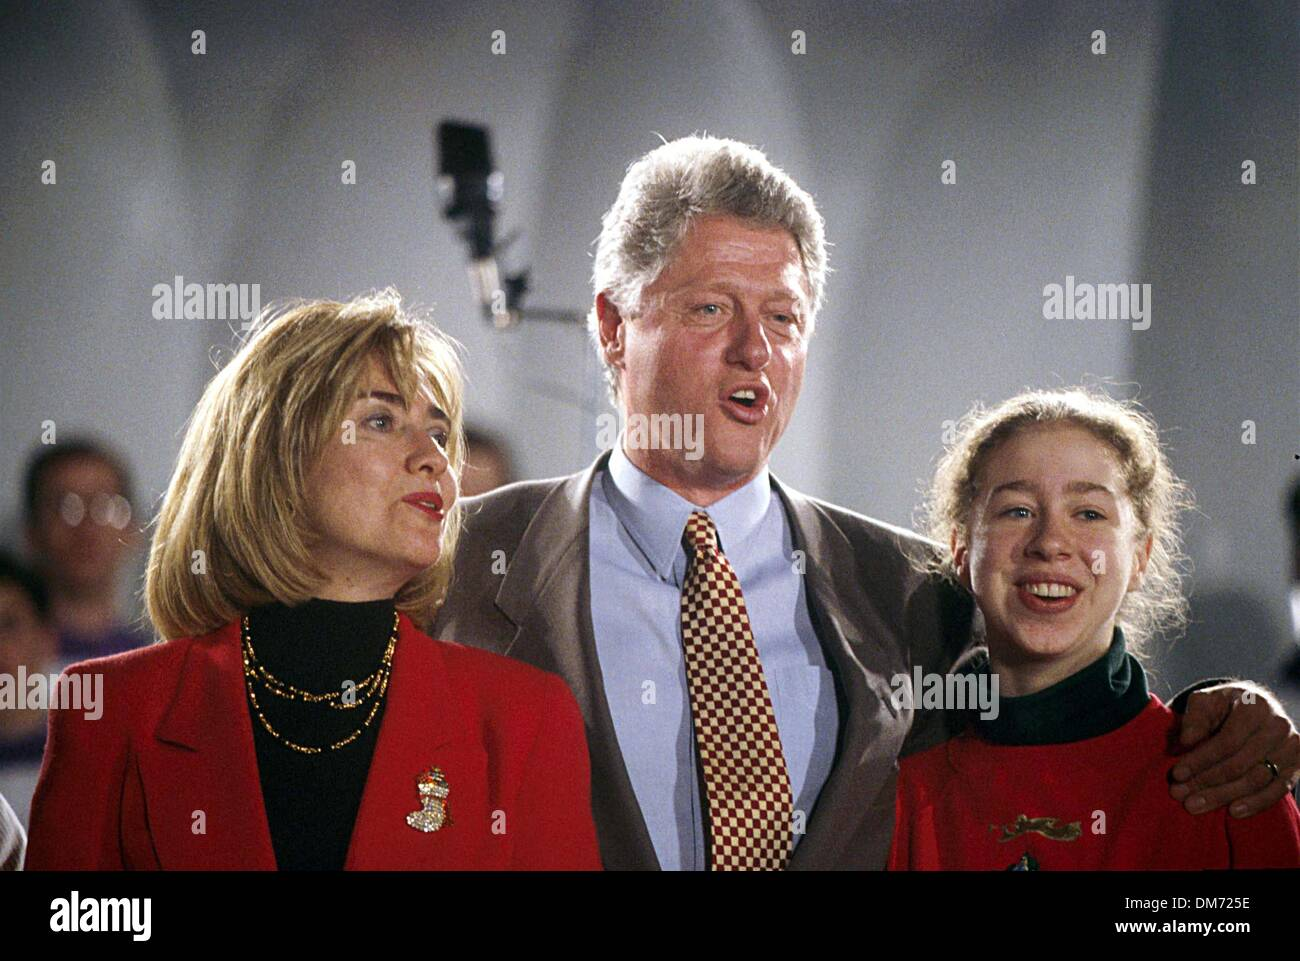 Dec. 7, 1994 - CHELSEA CLINTON WITH PARENTS BILL CLINTON AND ...